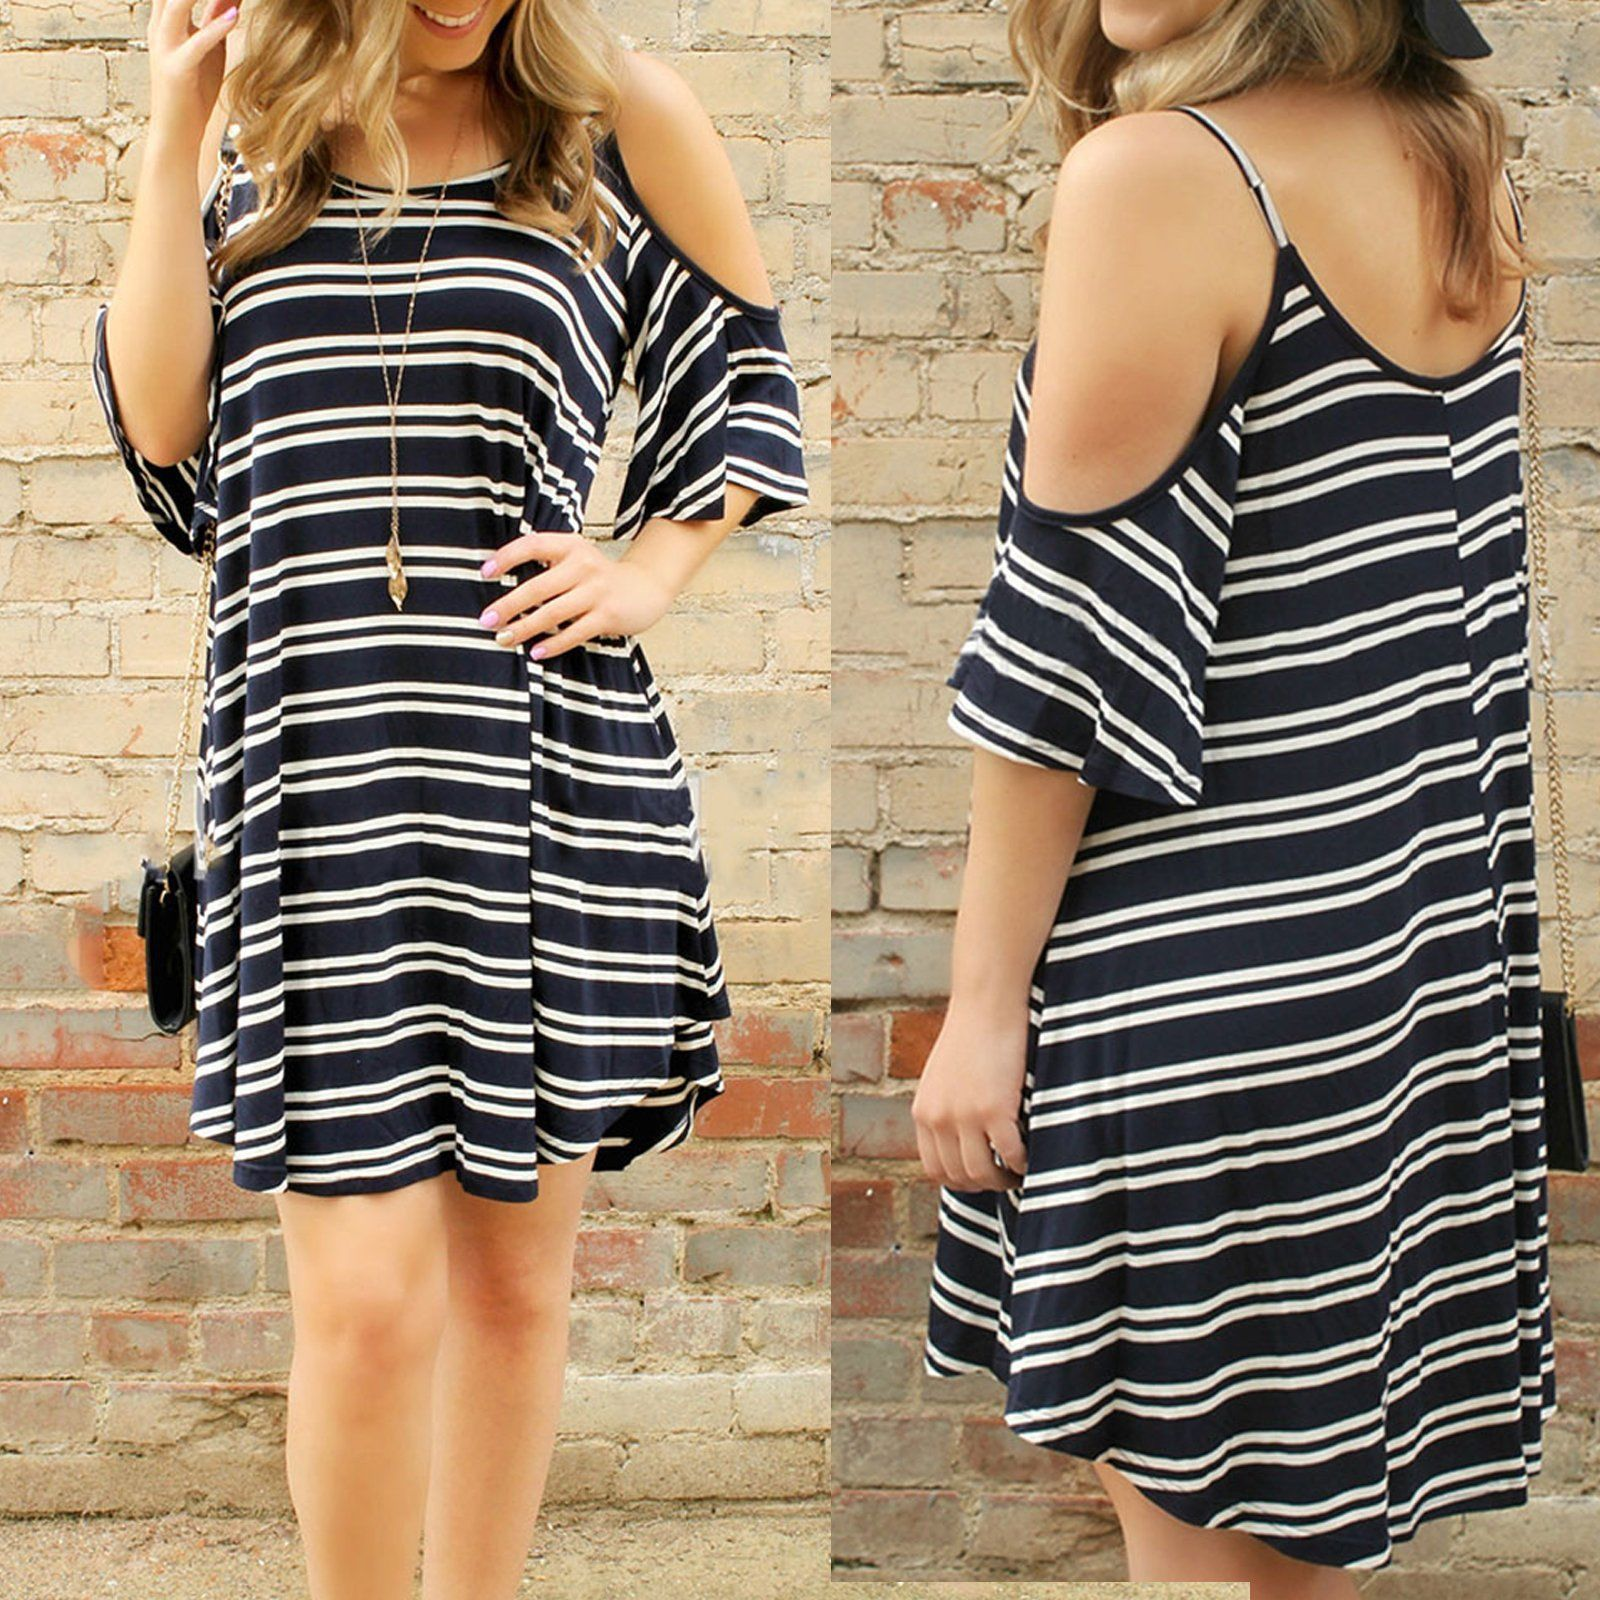 Women Sexy striped Strap dress loose Casual Beach Dress Black plus size  women clothing d95788175201